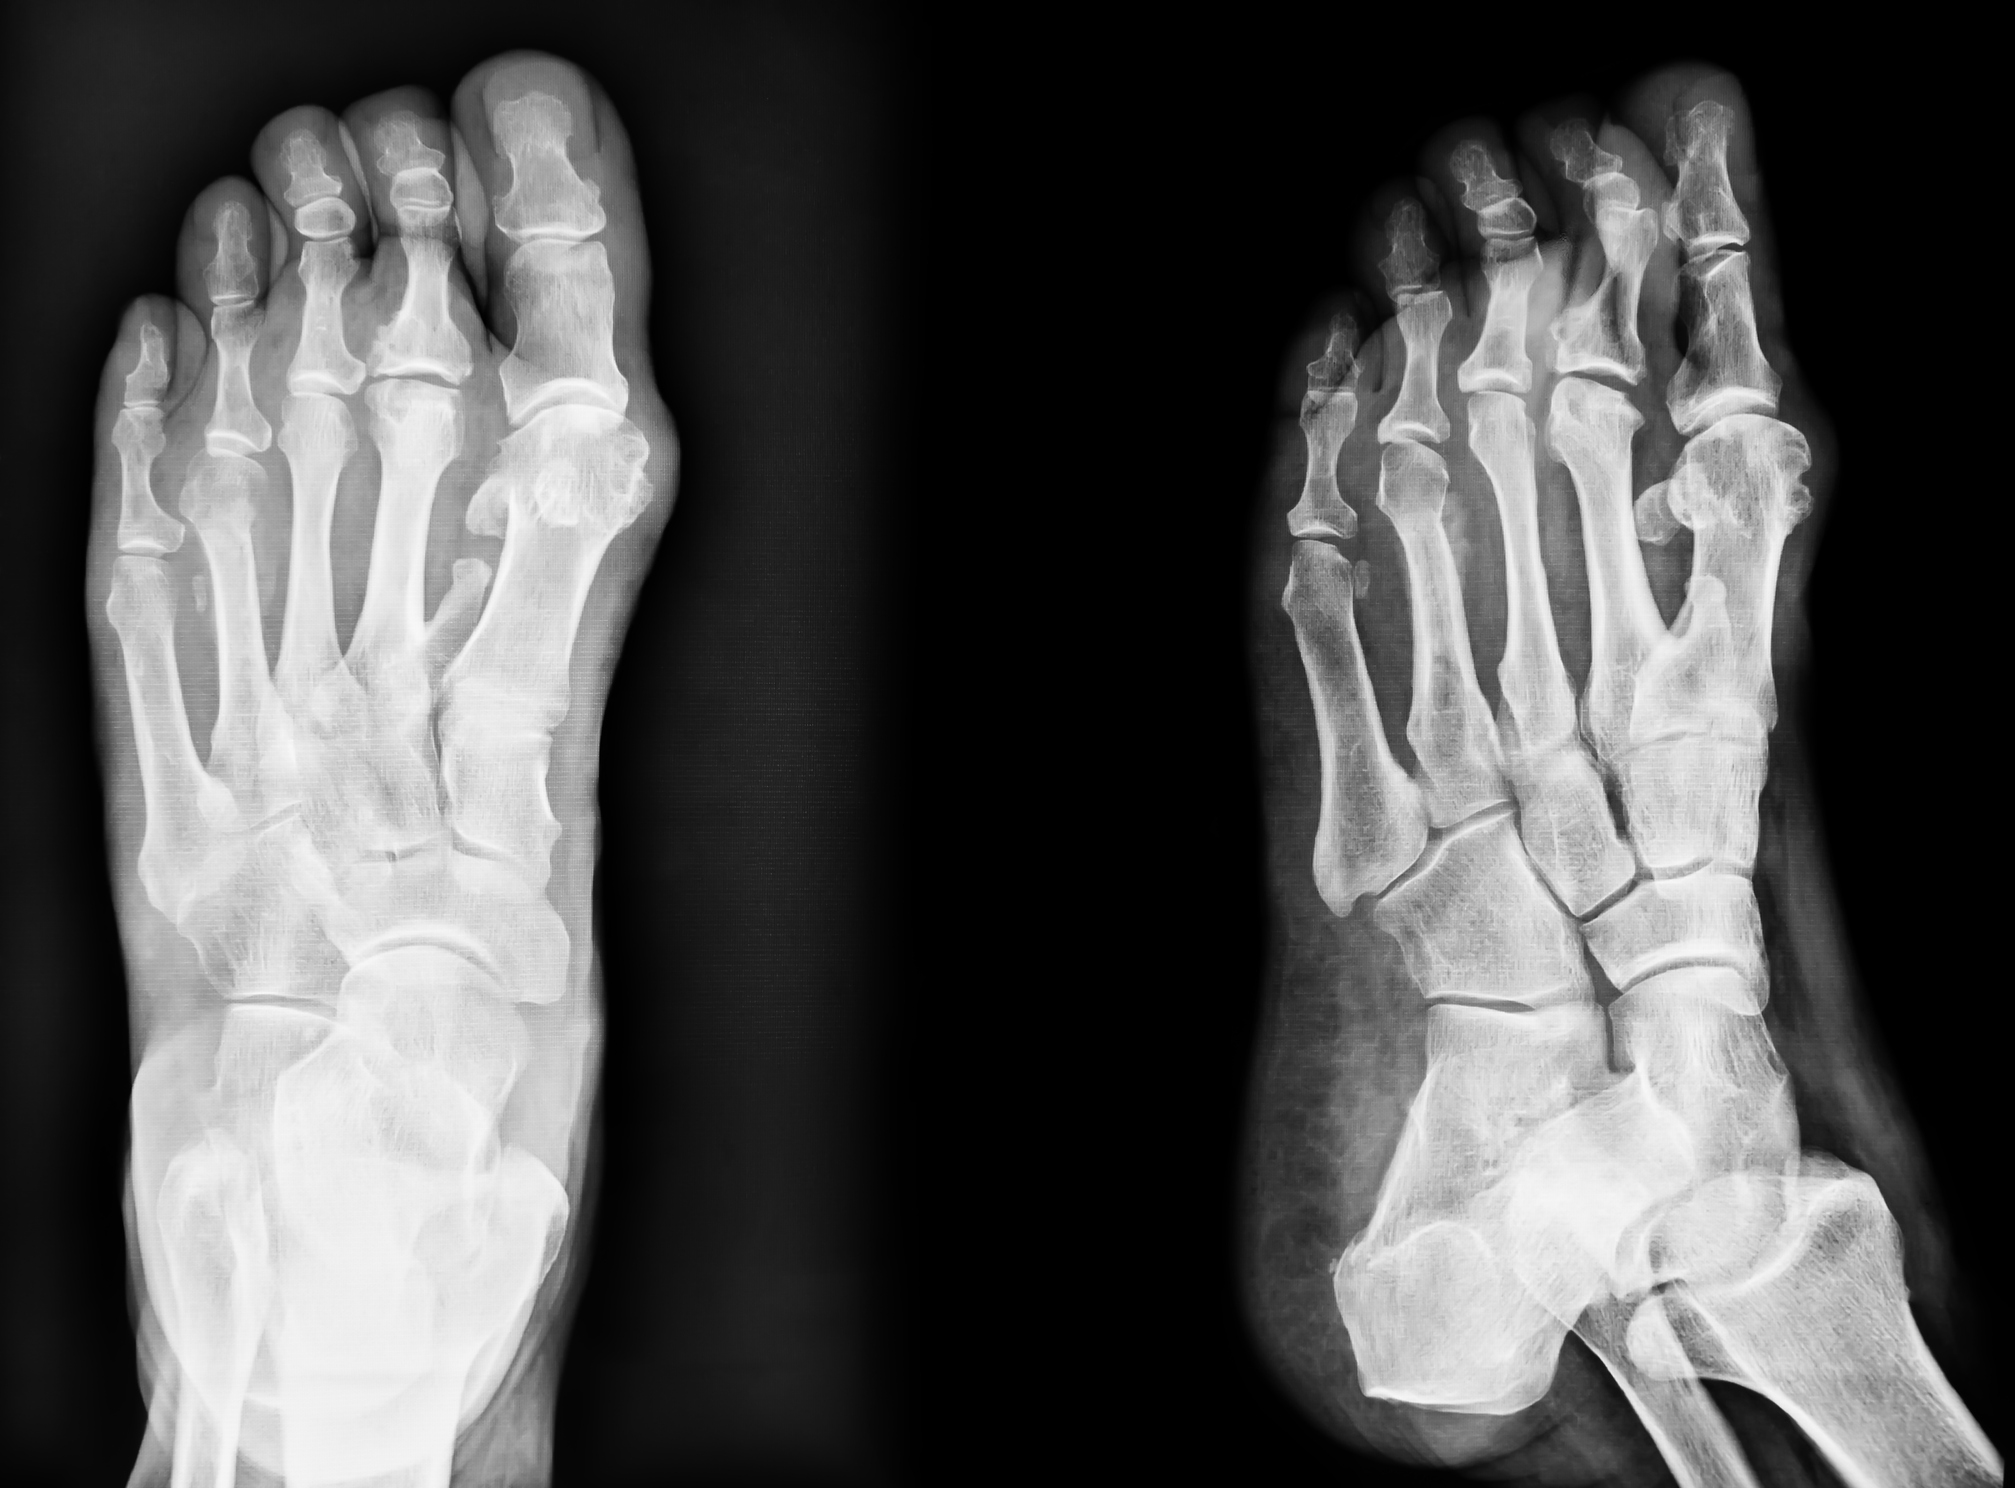 x-ray of hammertoe